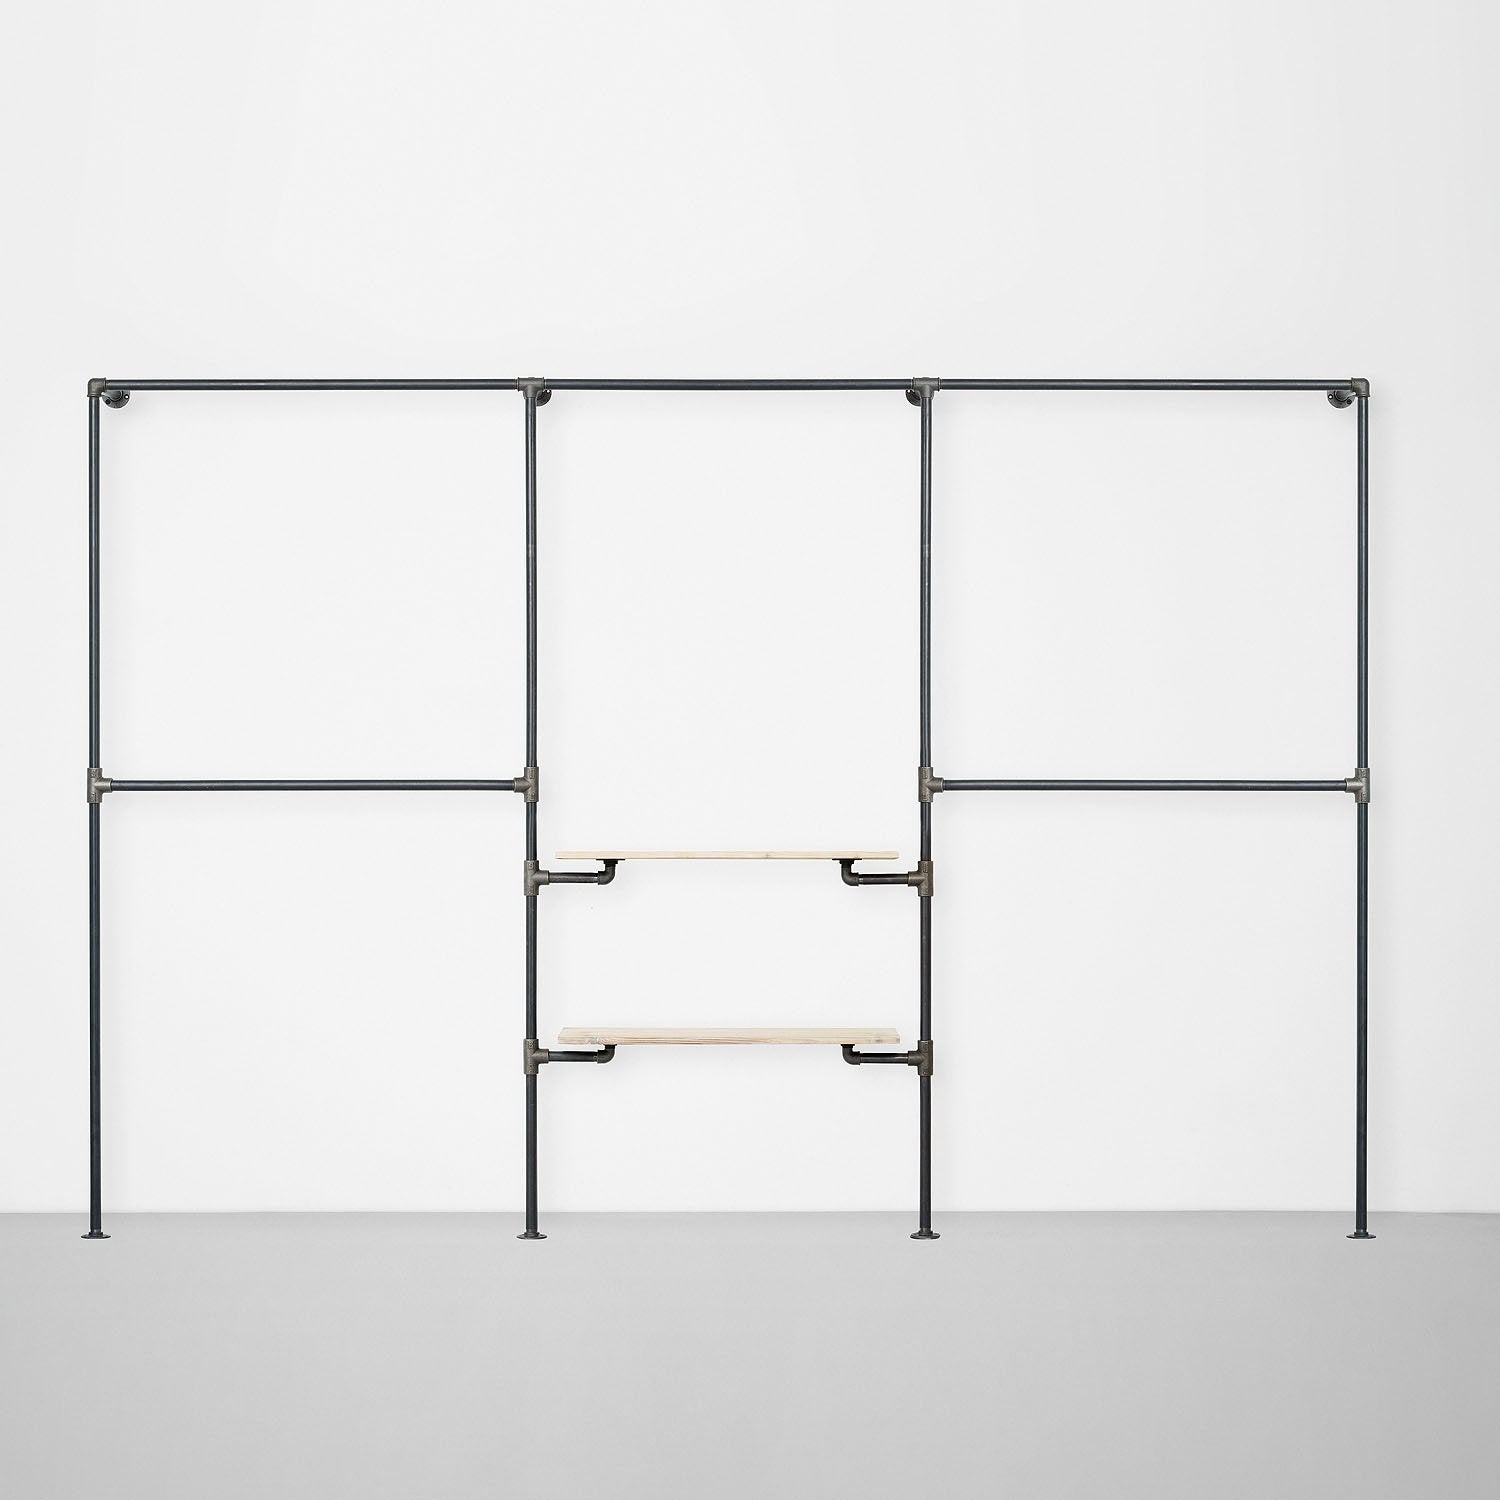 The Walk-In 3 row wardrobe system - (2 rails / 1 rail + 2 shelves / 2 rails)